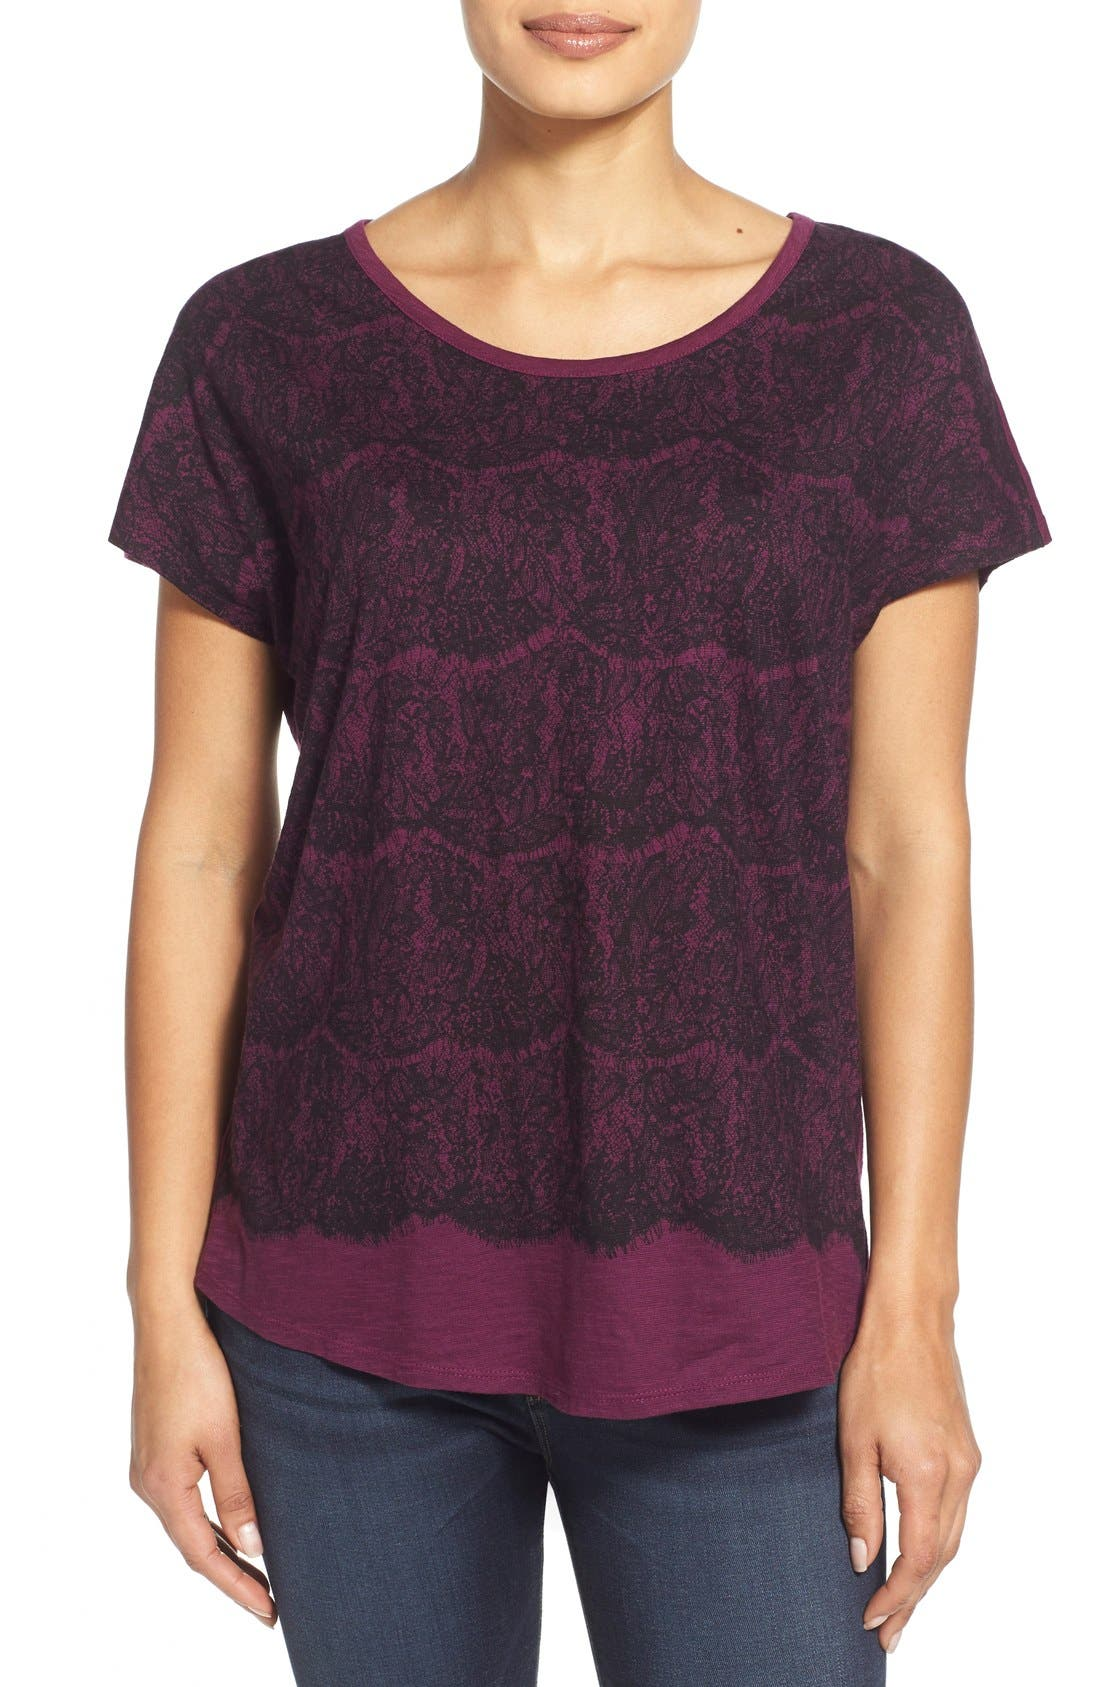 Alternate Image 1 Selected - Two by Vince Camuto Lace Graphic Cotton Tee